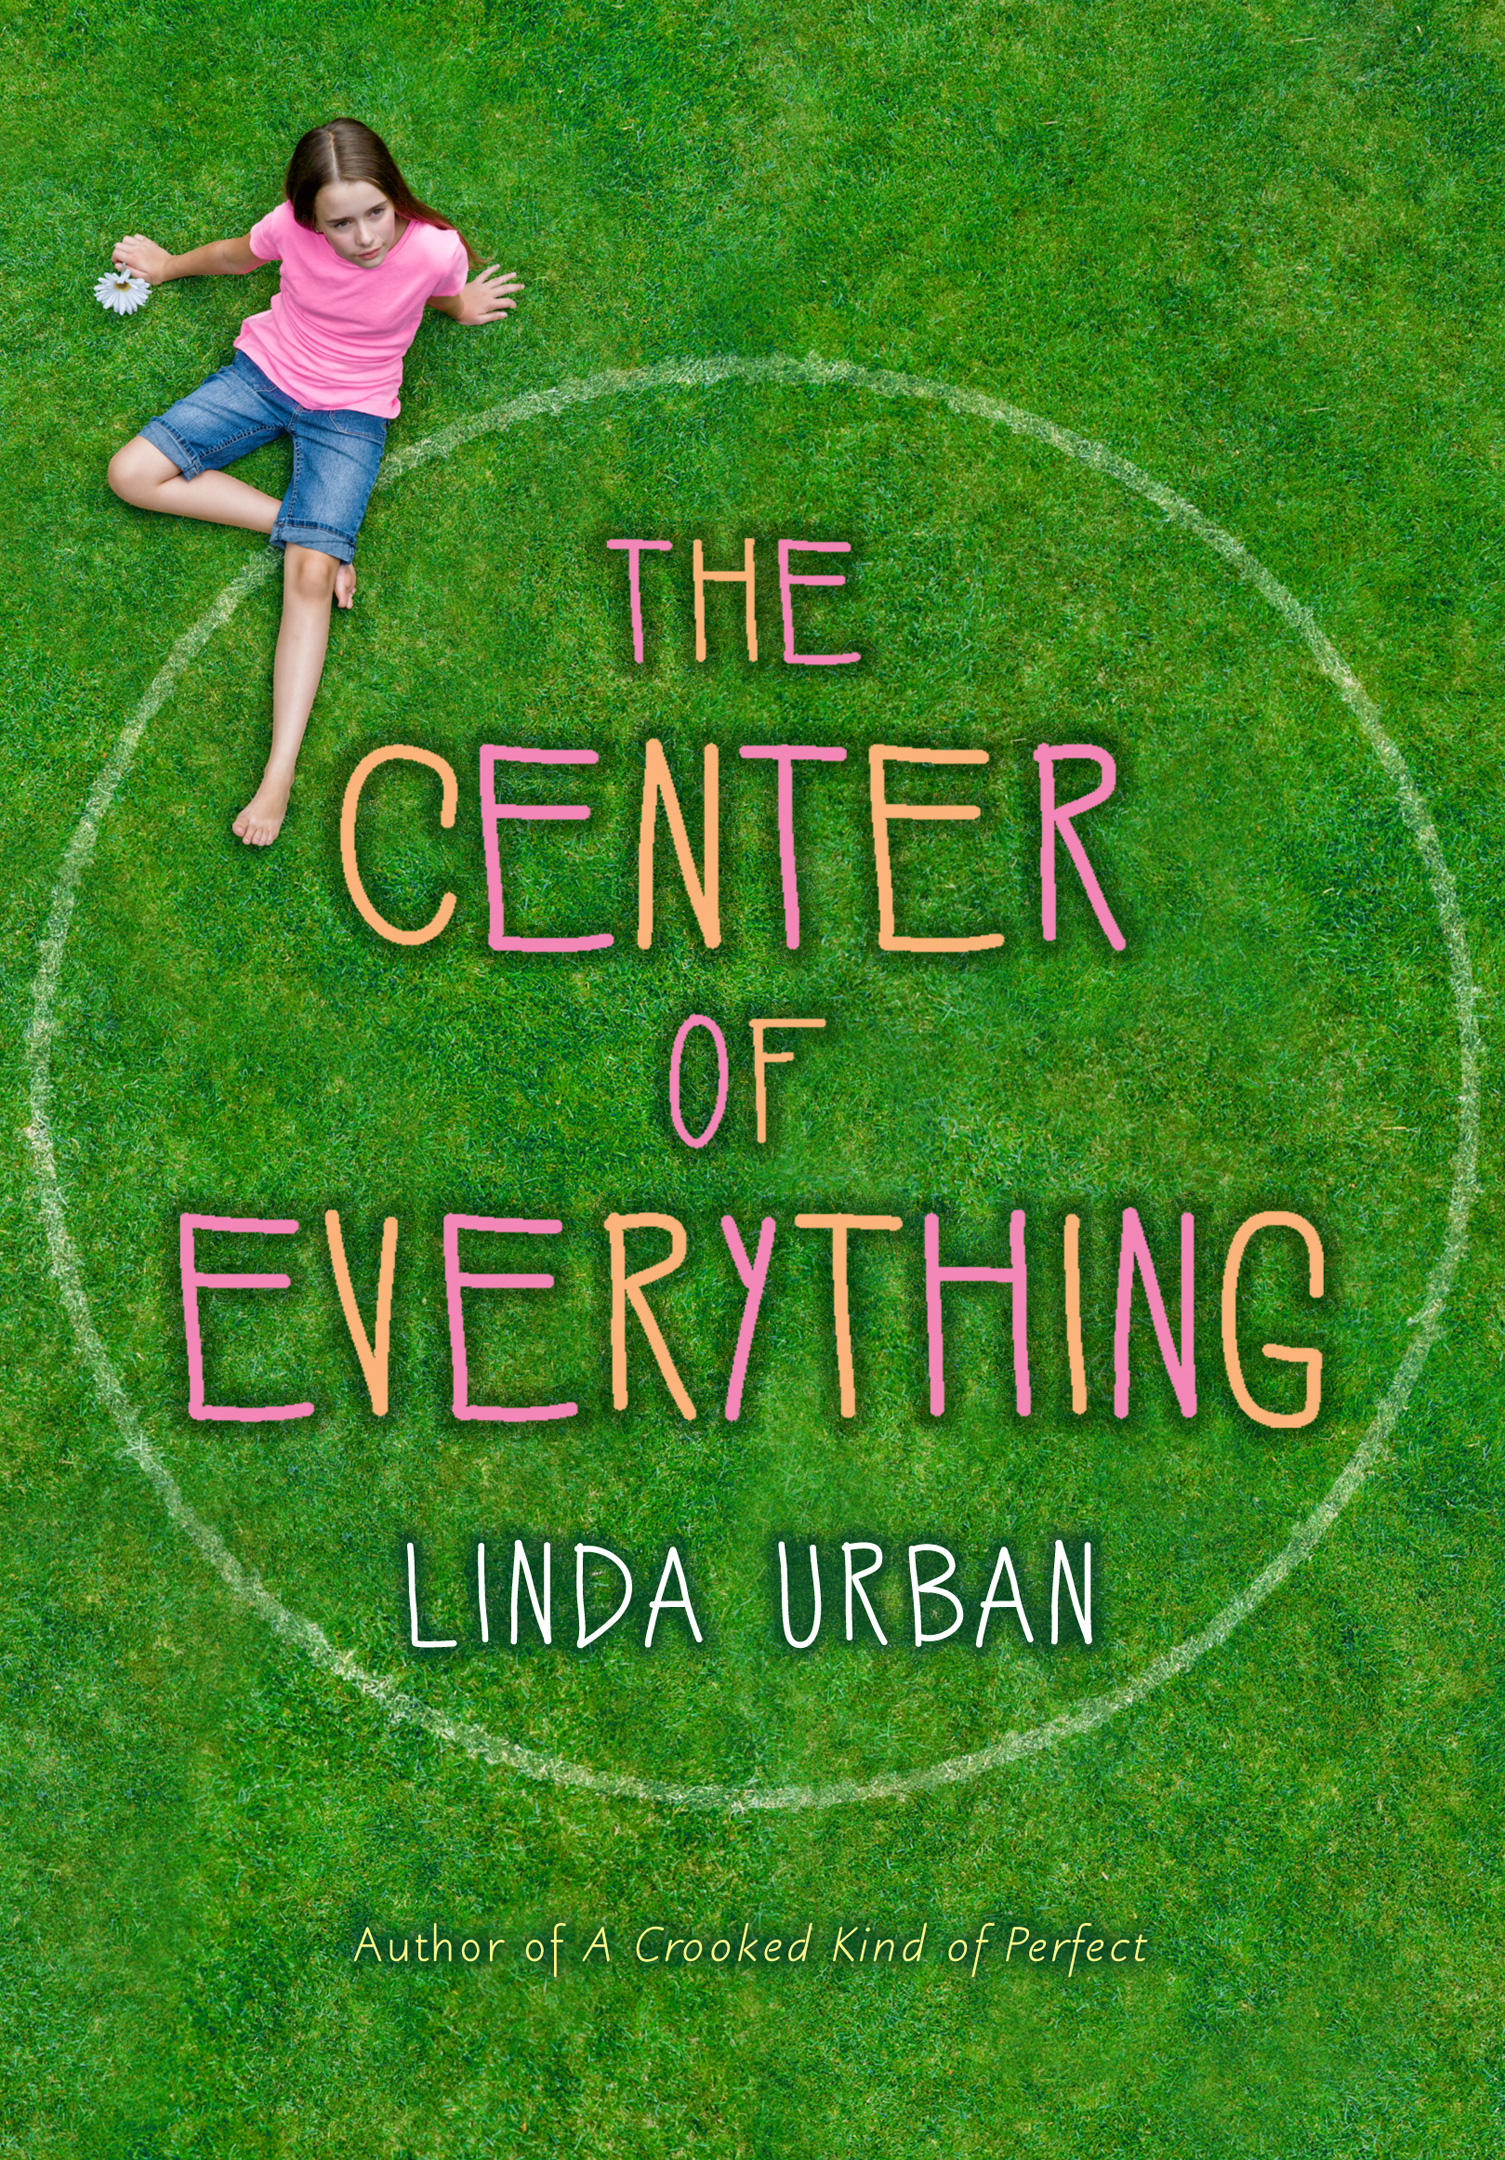 The Center of Everything book cover